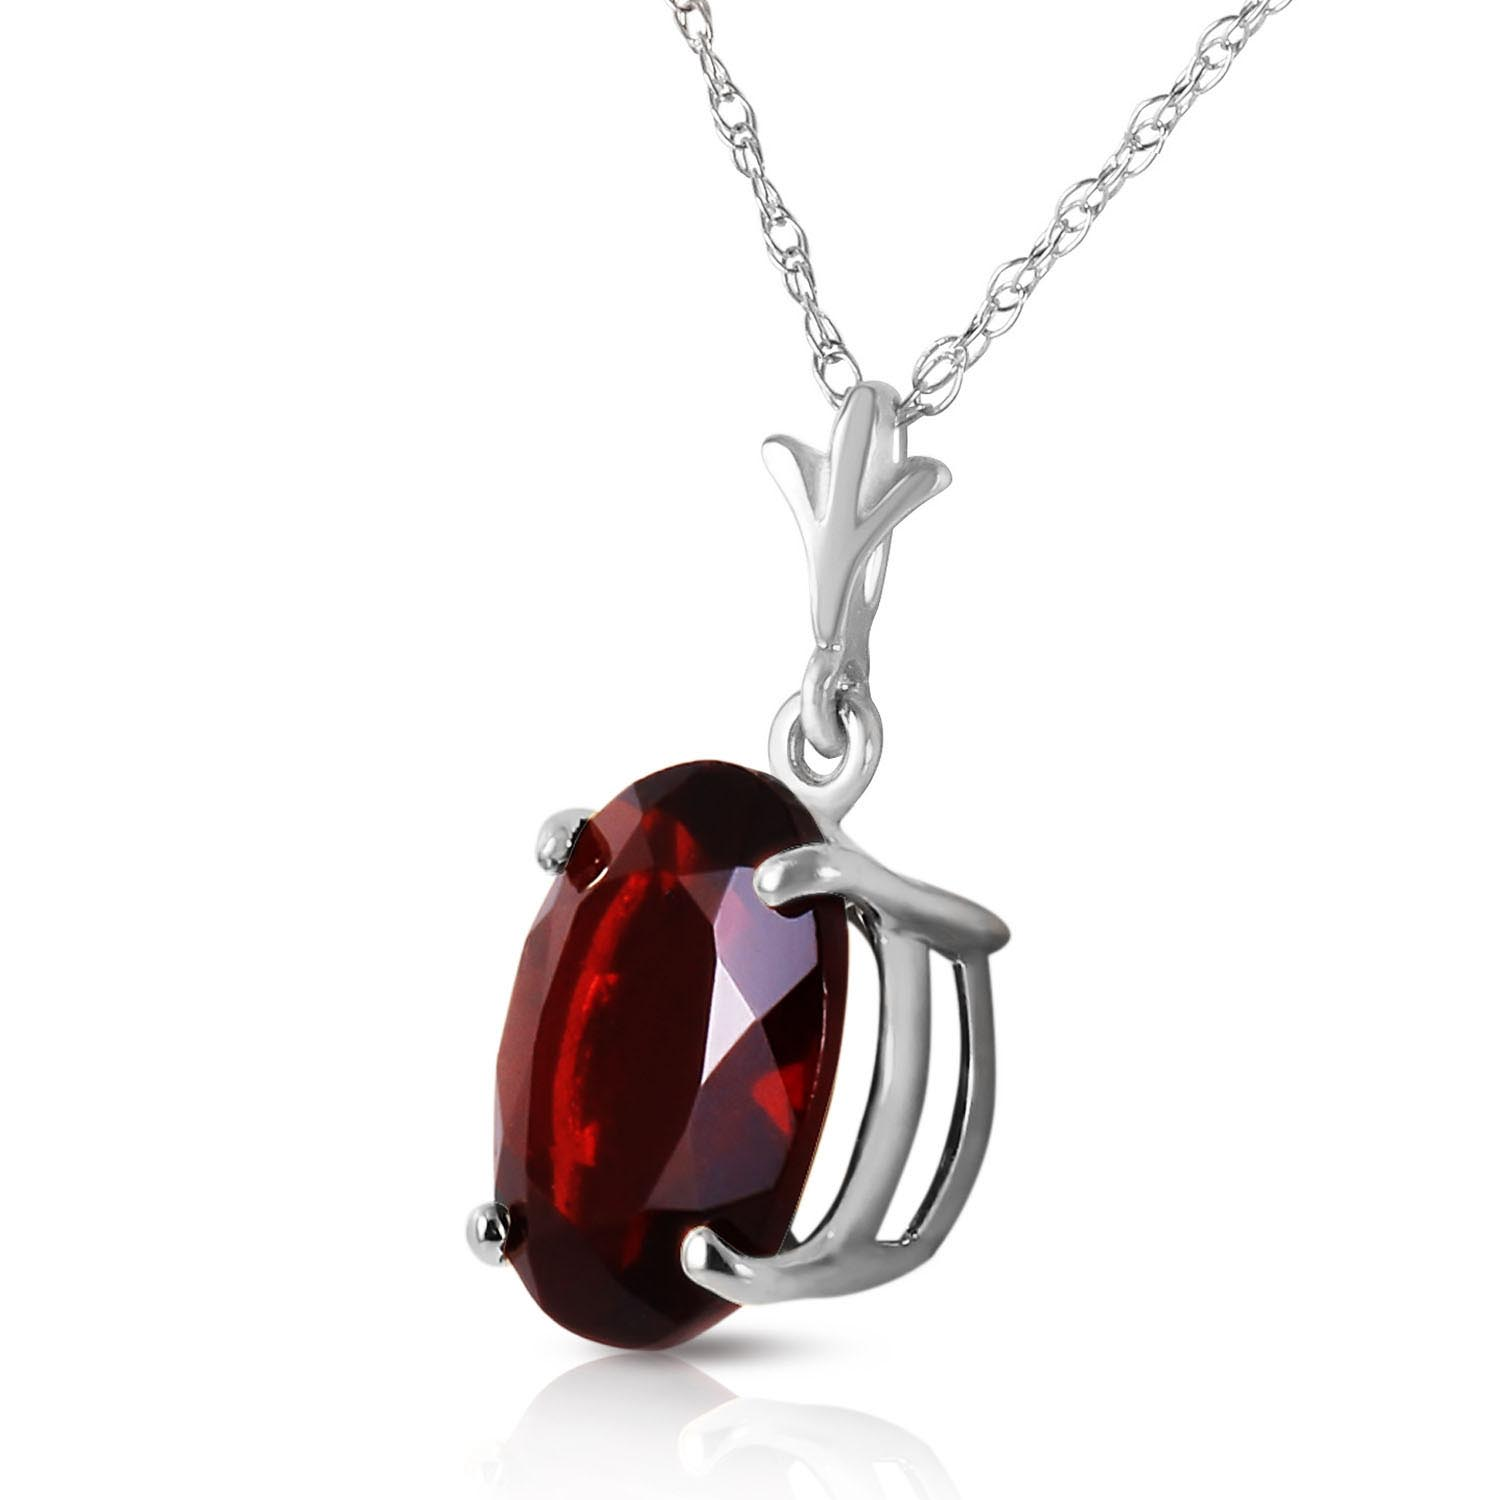 Oval Cut Garnet Pendant Necklace 3.12ct in 9ct White Gold